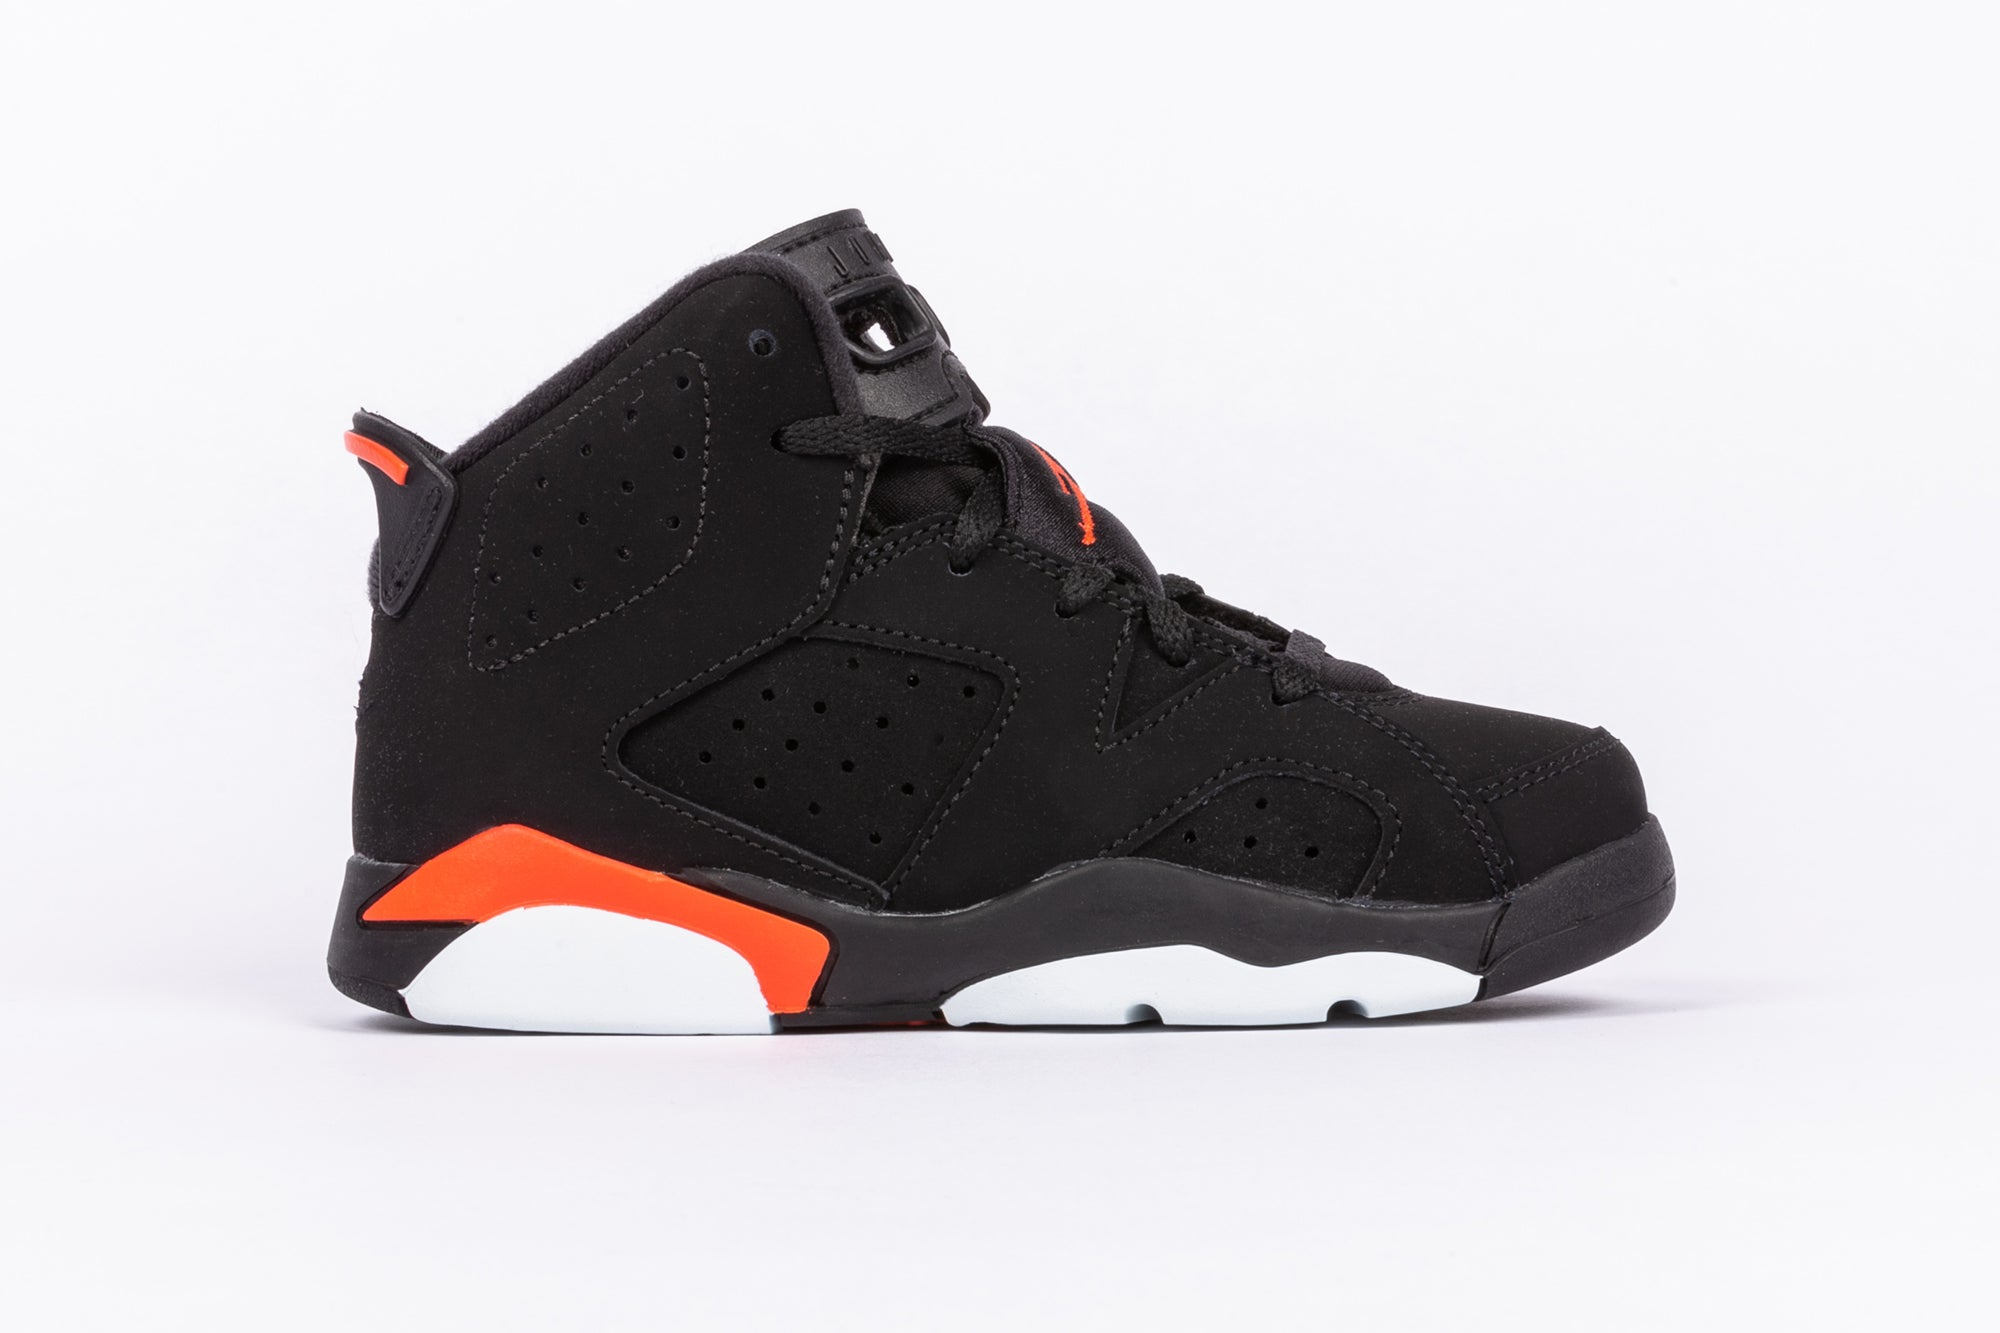 a28602e20c7b81 AIR JORDAN 6 RETRO (PS)